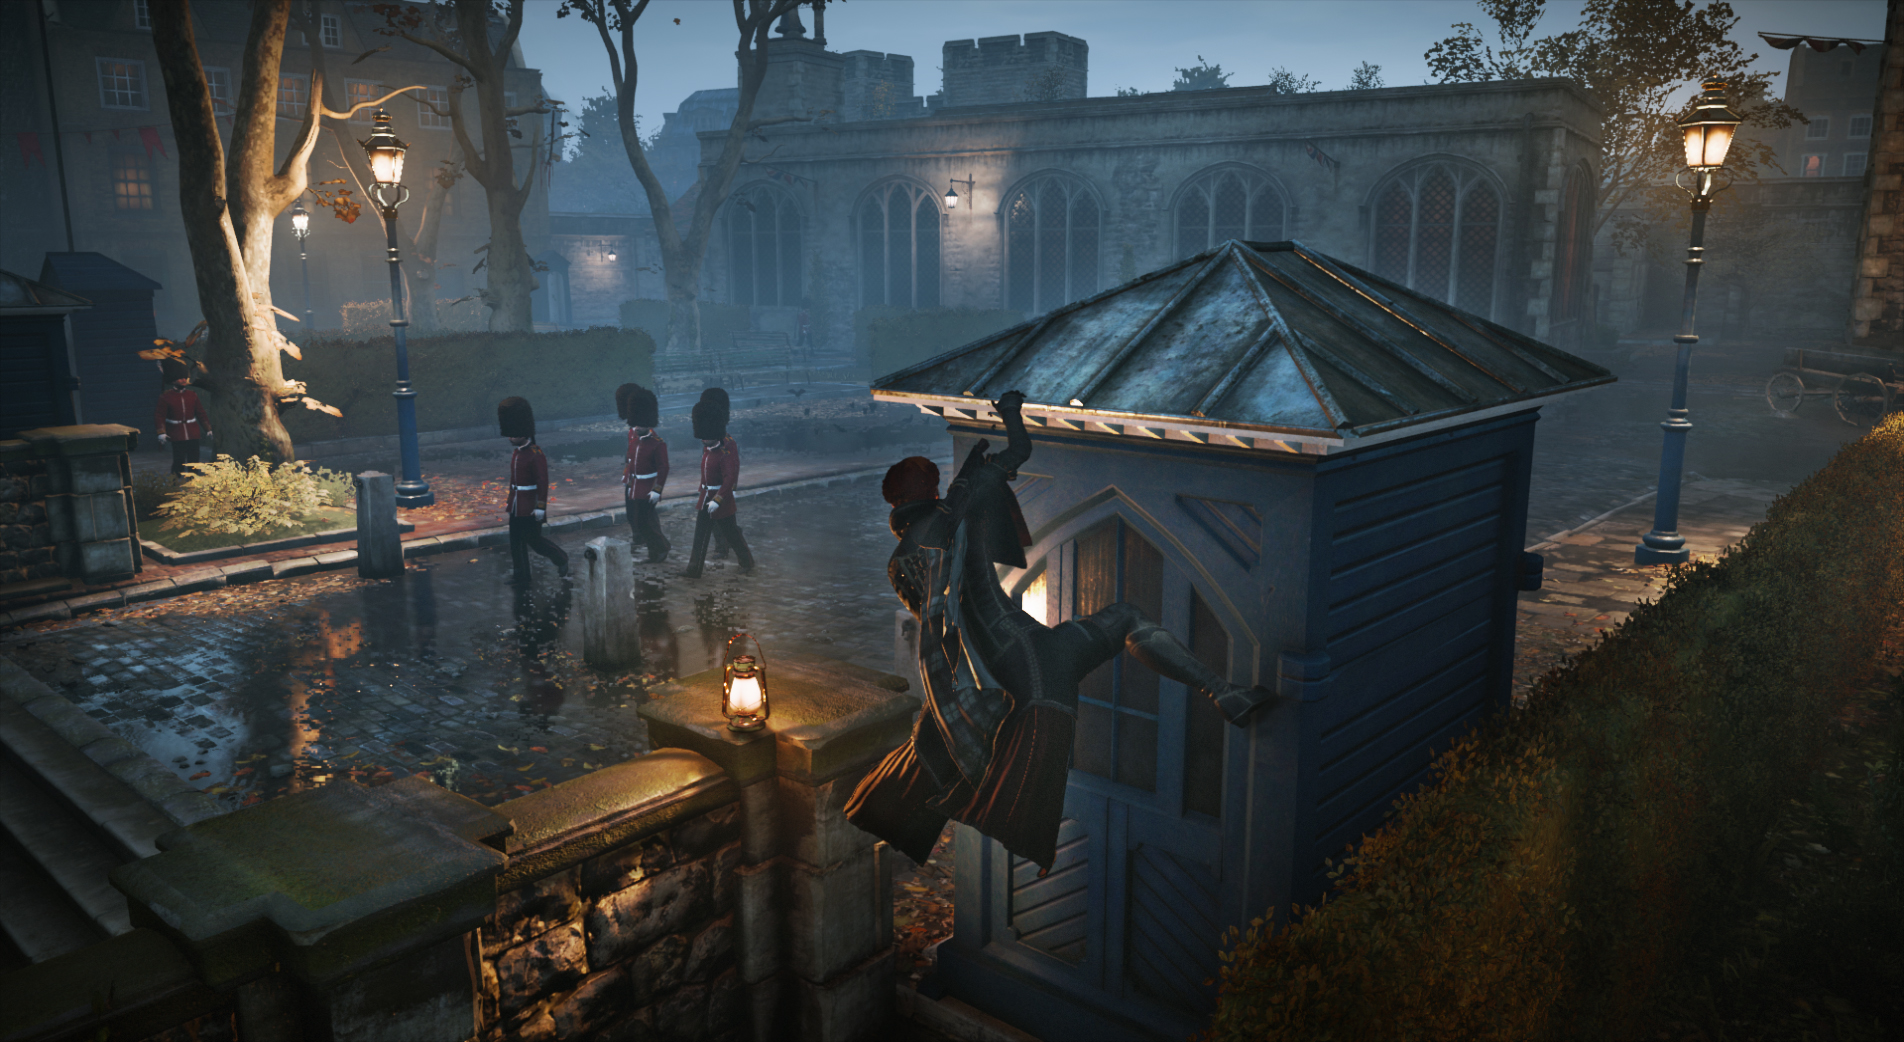 download assassin's creed syndicate gold edition cracked by codex co-op p2p tungle include all dlc and latest update mirrorace multiup